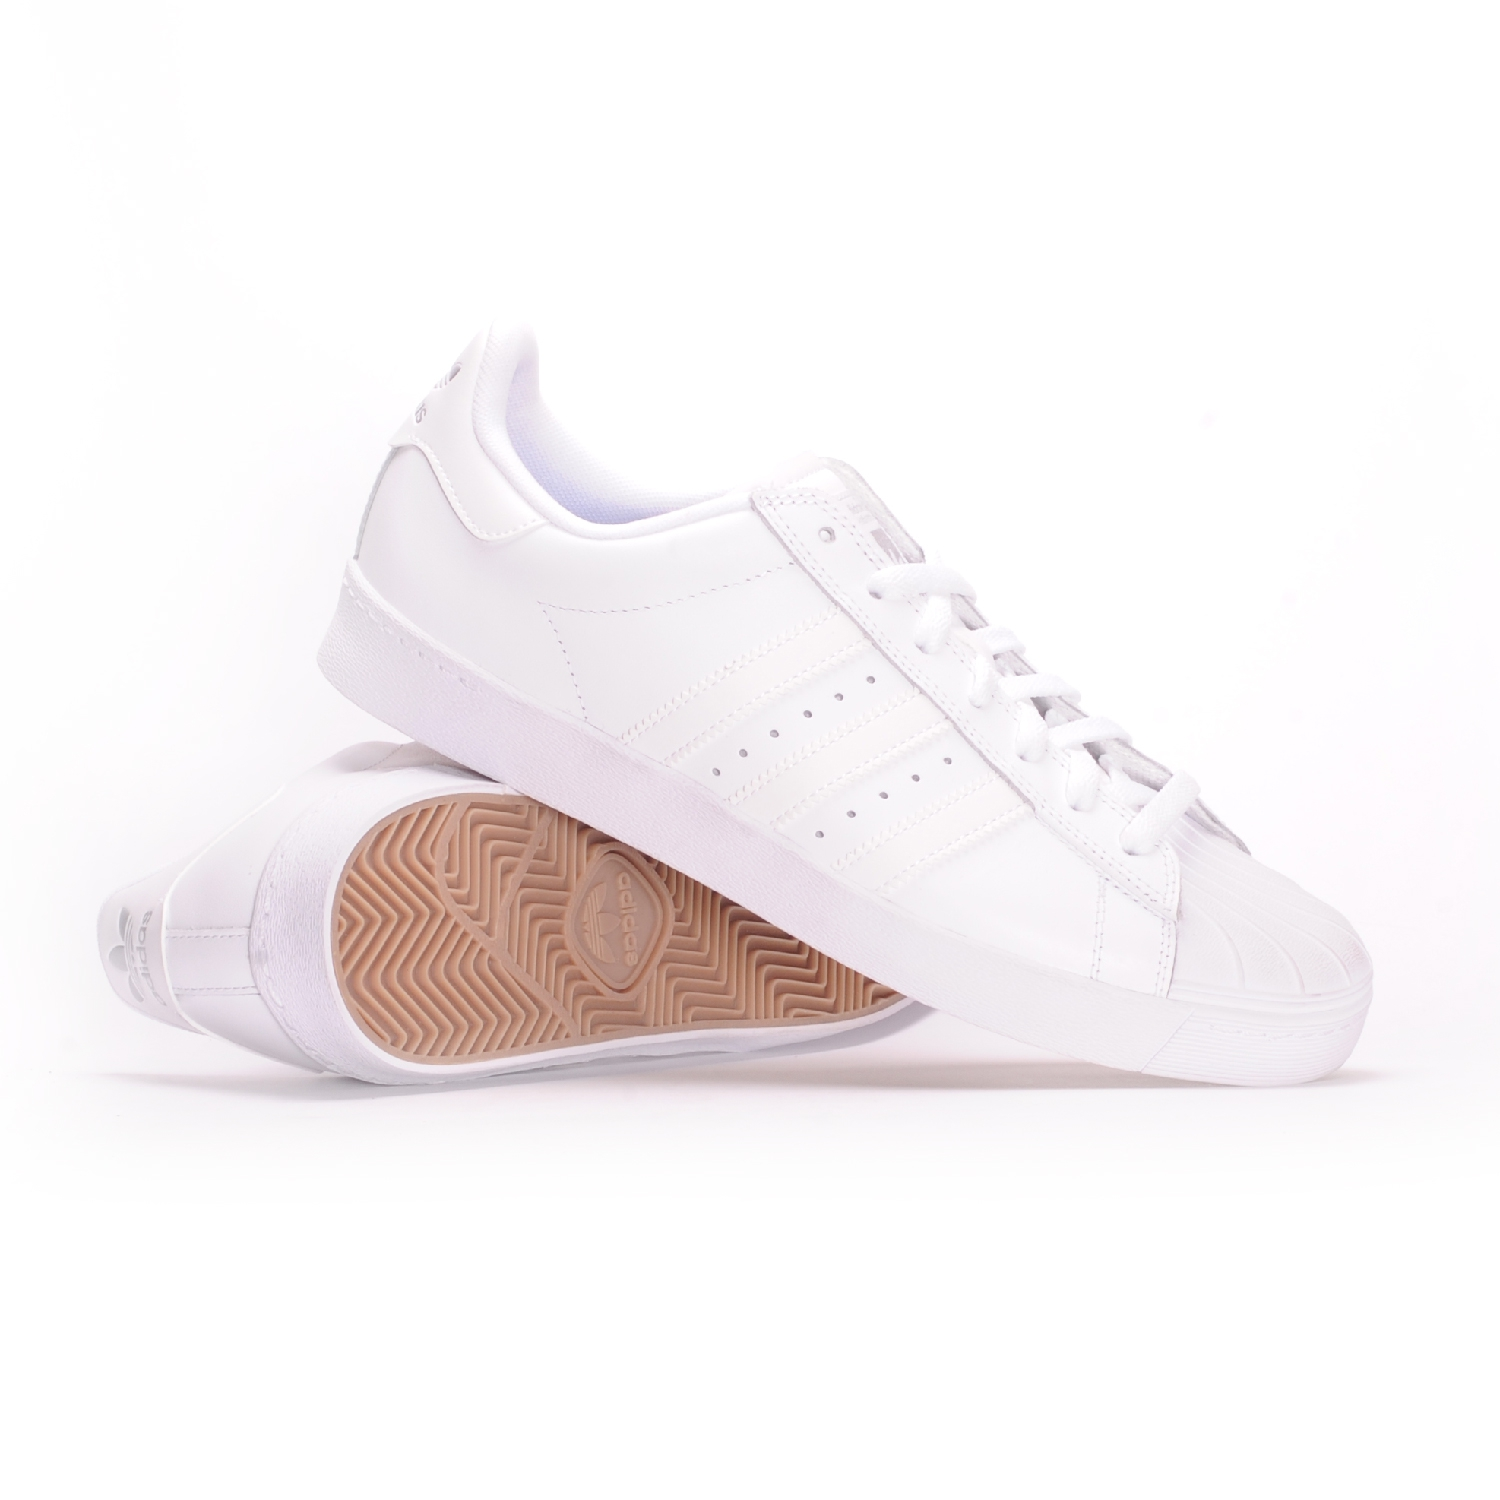 Adidas Superstar Vulc Adv Collegiate Navy Cream White Hers trainers